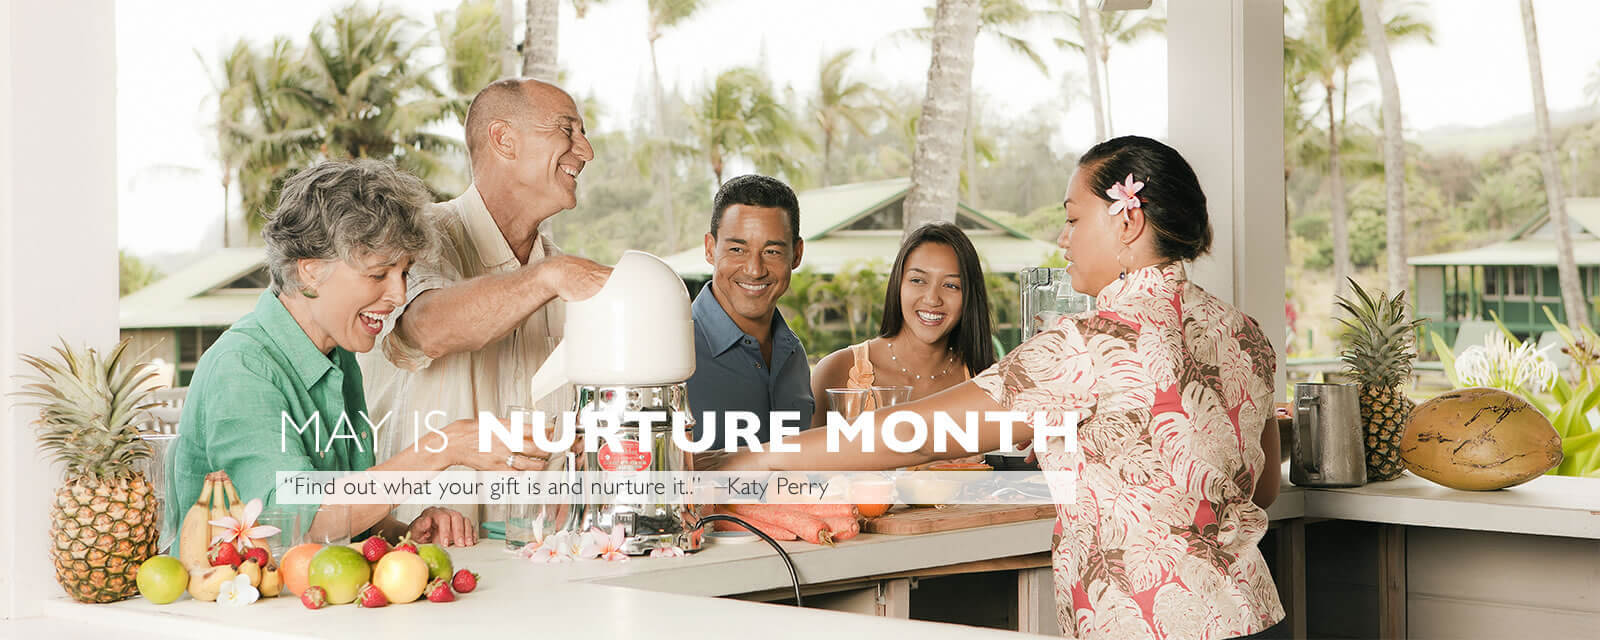 May is Nurture month at Travaasa